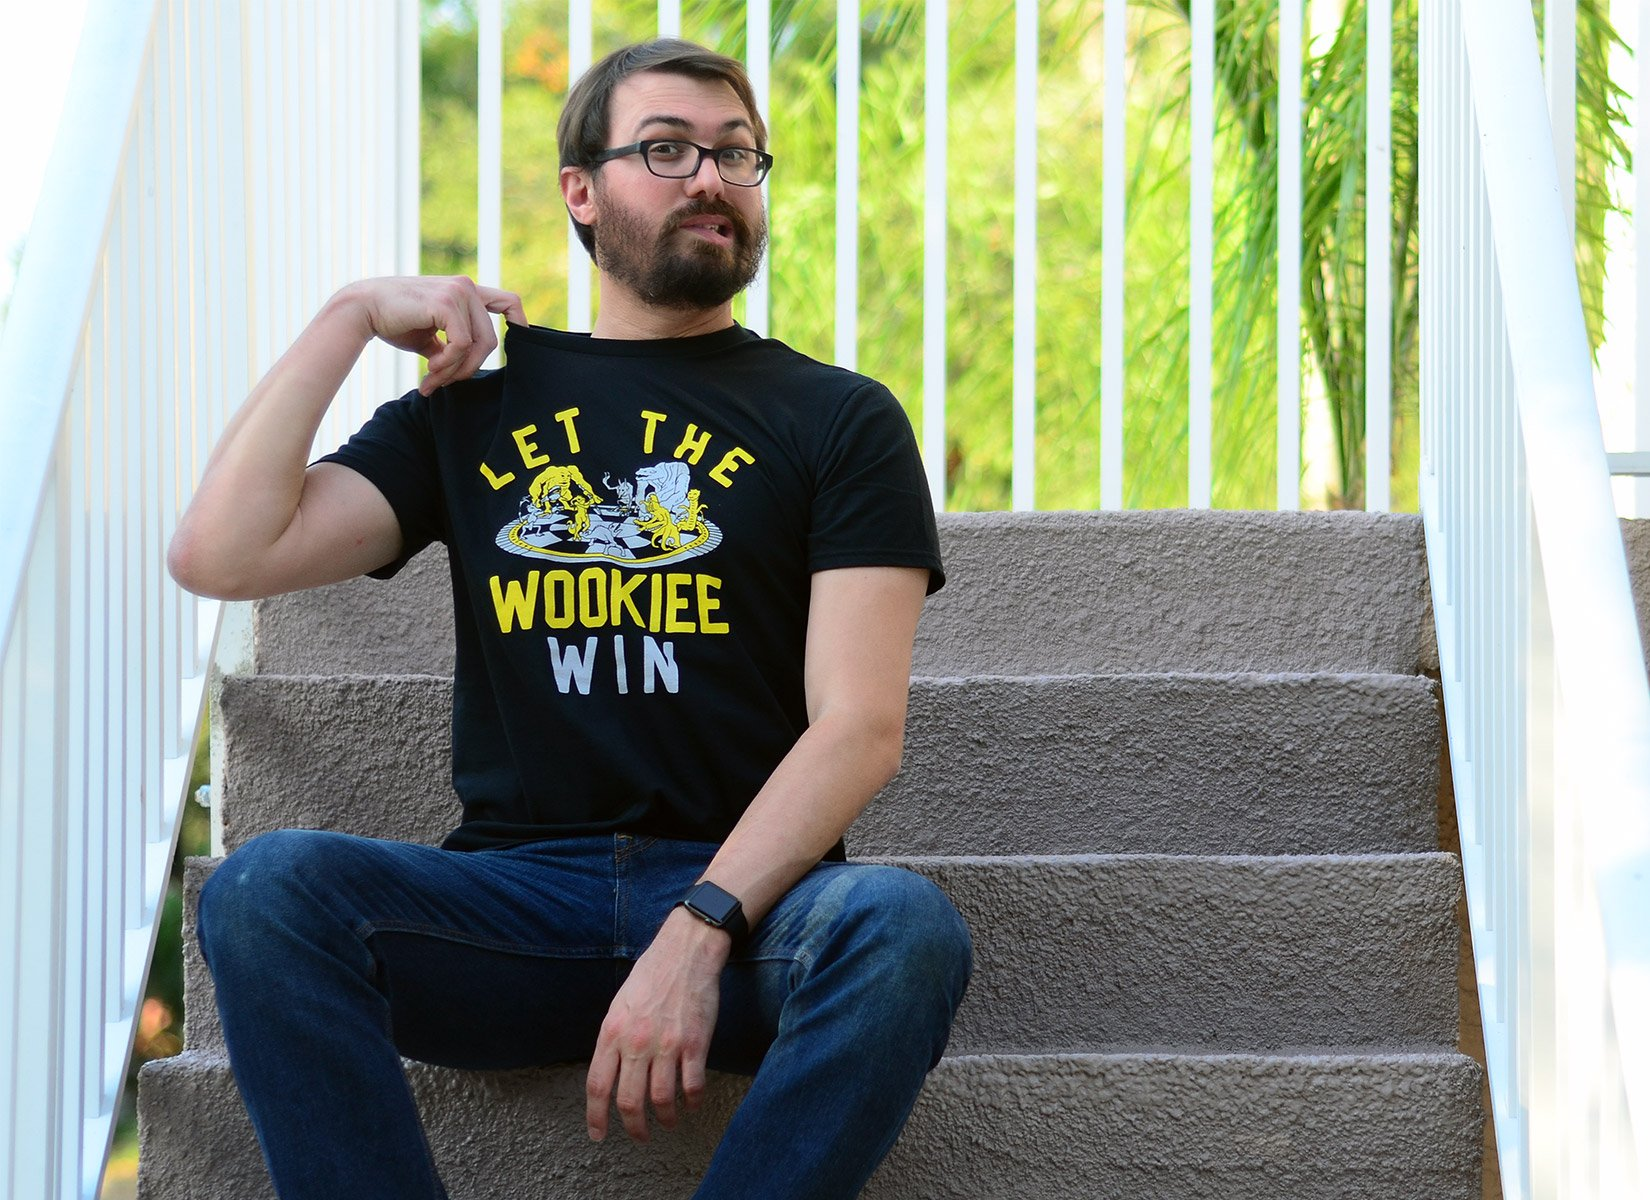 Let The Wookiee Win on Mens T-Shirt